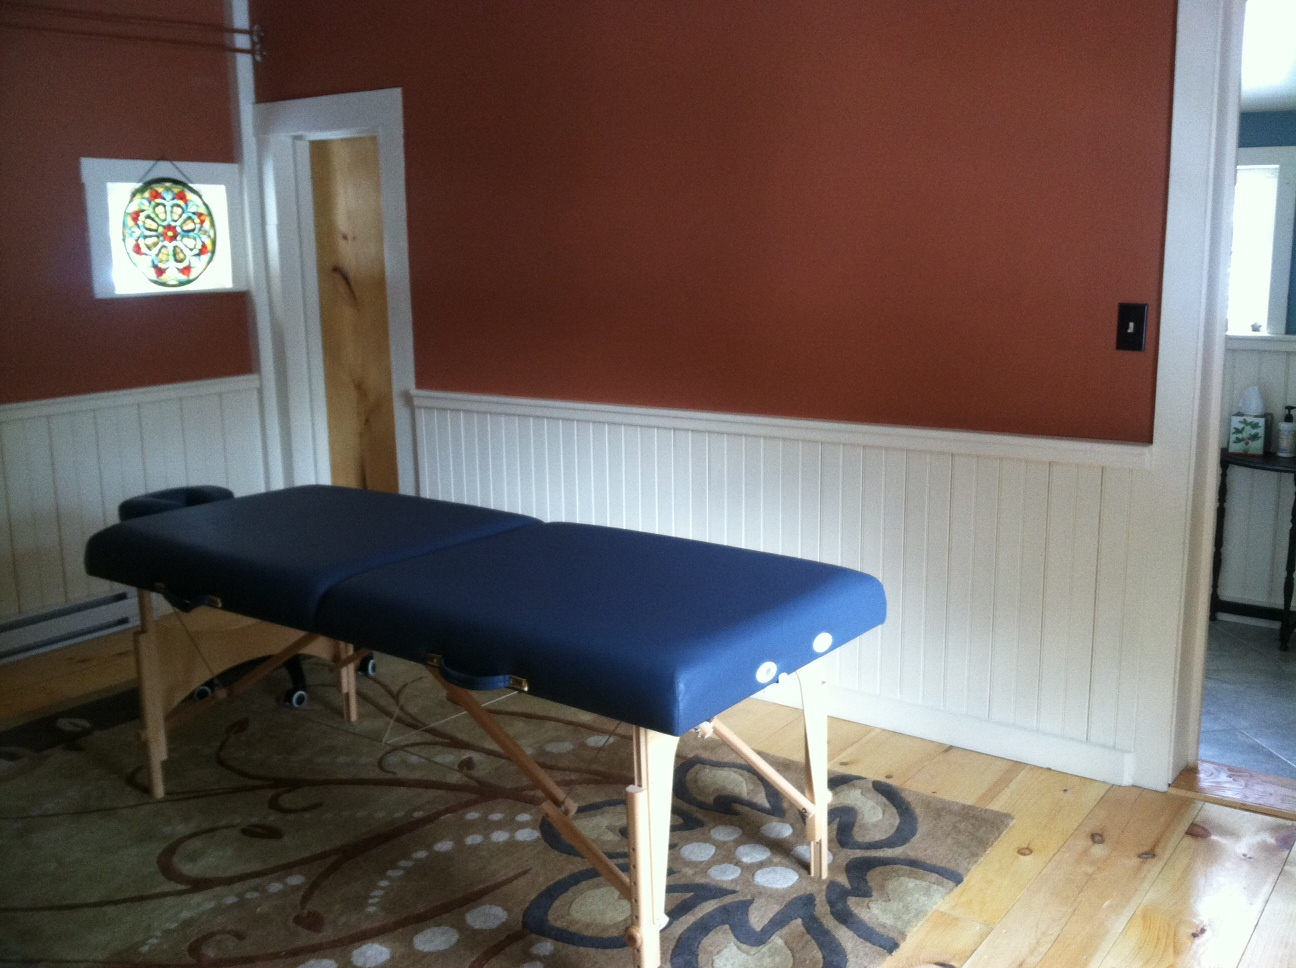 Peaceful treatment room at Russellville Schoolhouse in Shrewsbury.